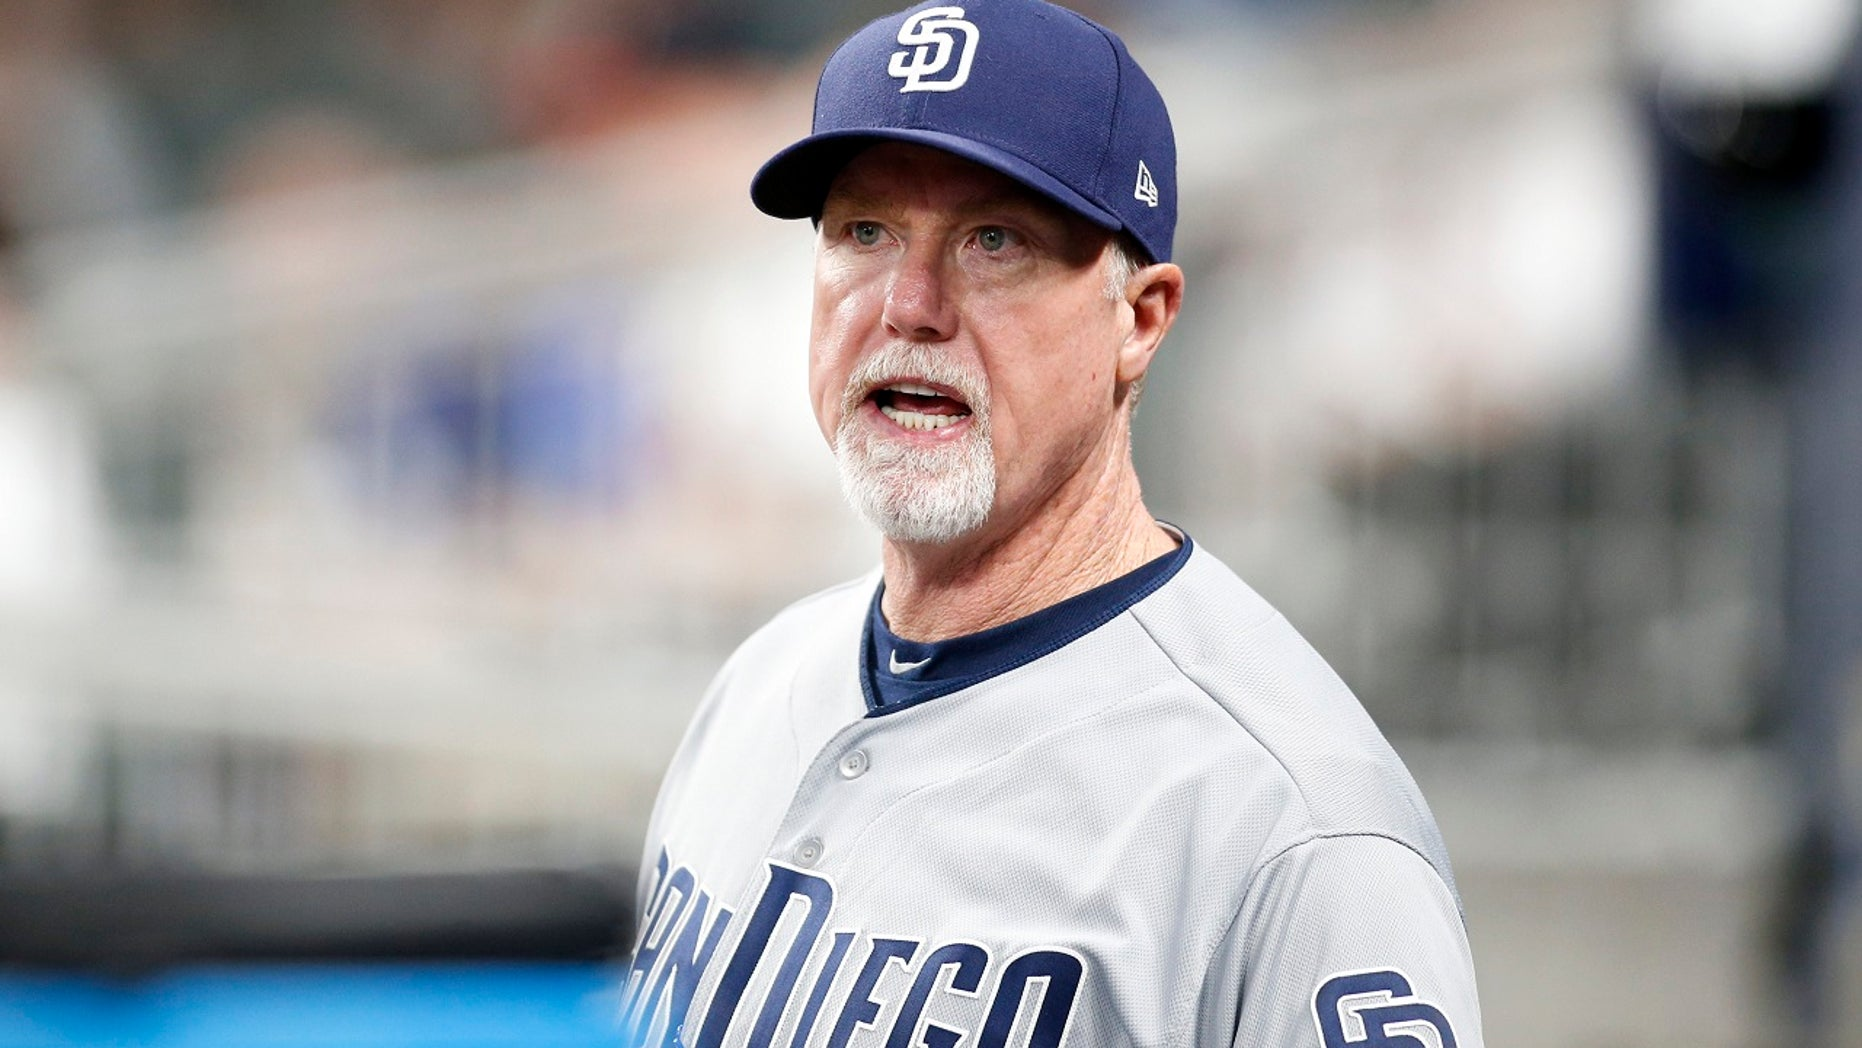 Mark McGwire thinks he could have hit 70 home runs even without the use of performance enhancing drugs, according to a new report.